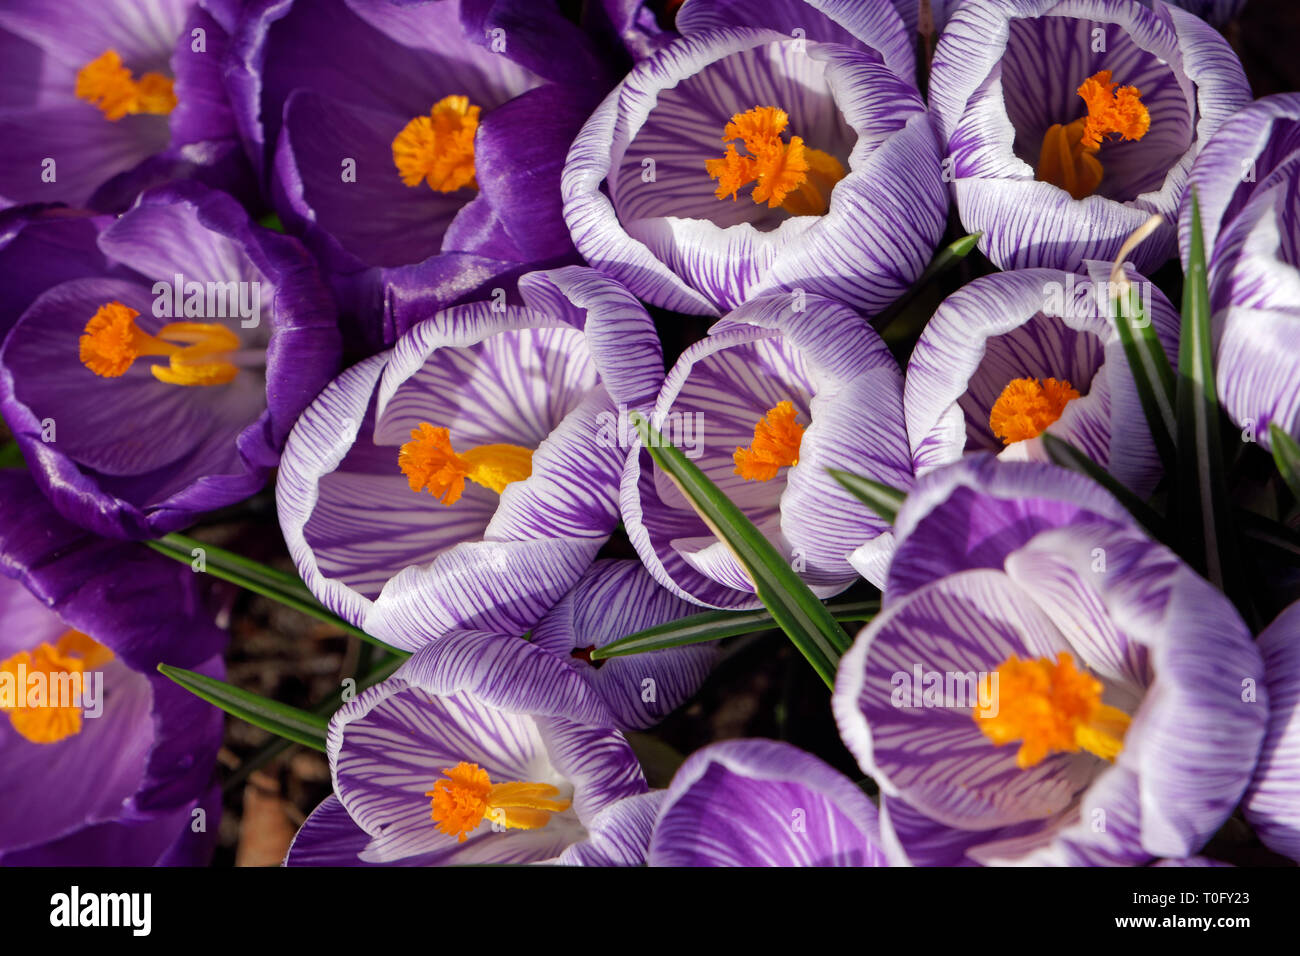 Closeup of crocuses blooming in spring, Vancouver, BC, Canada - Stock Image